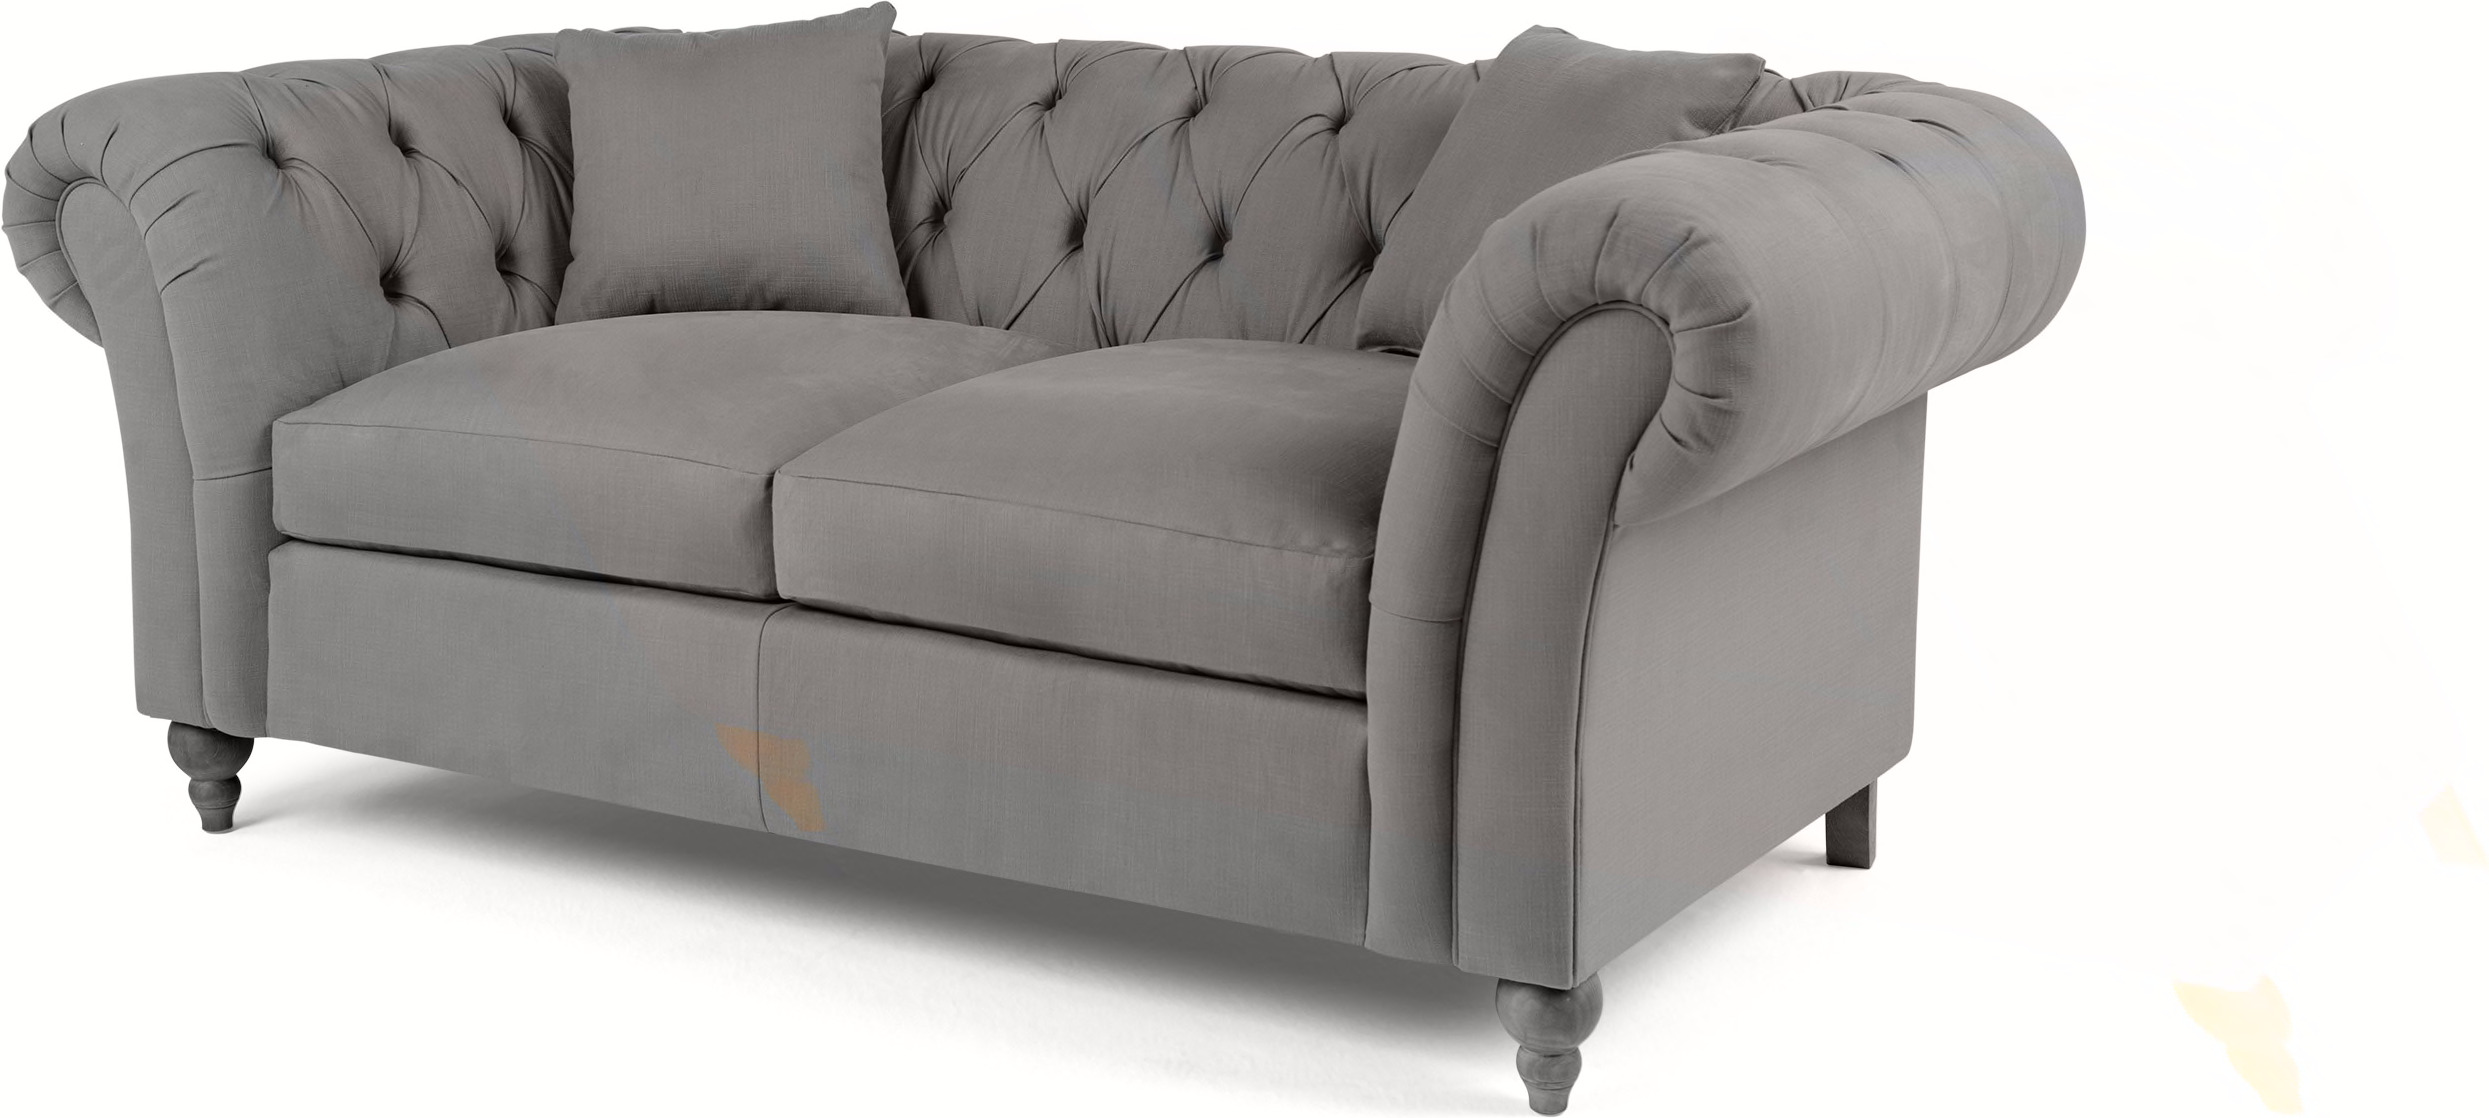 Buy cheap 2 seater chesterfield sofa compare Sofas prices for best UK deals